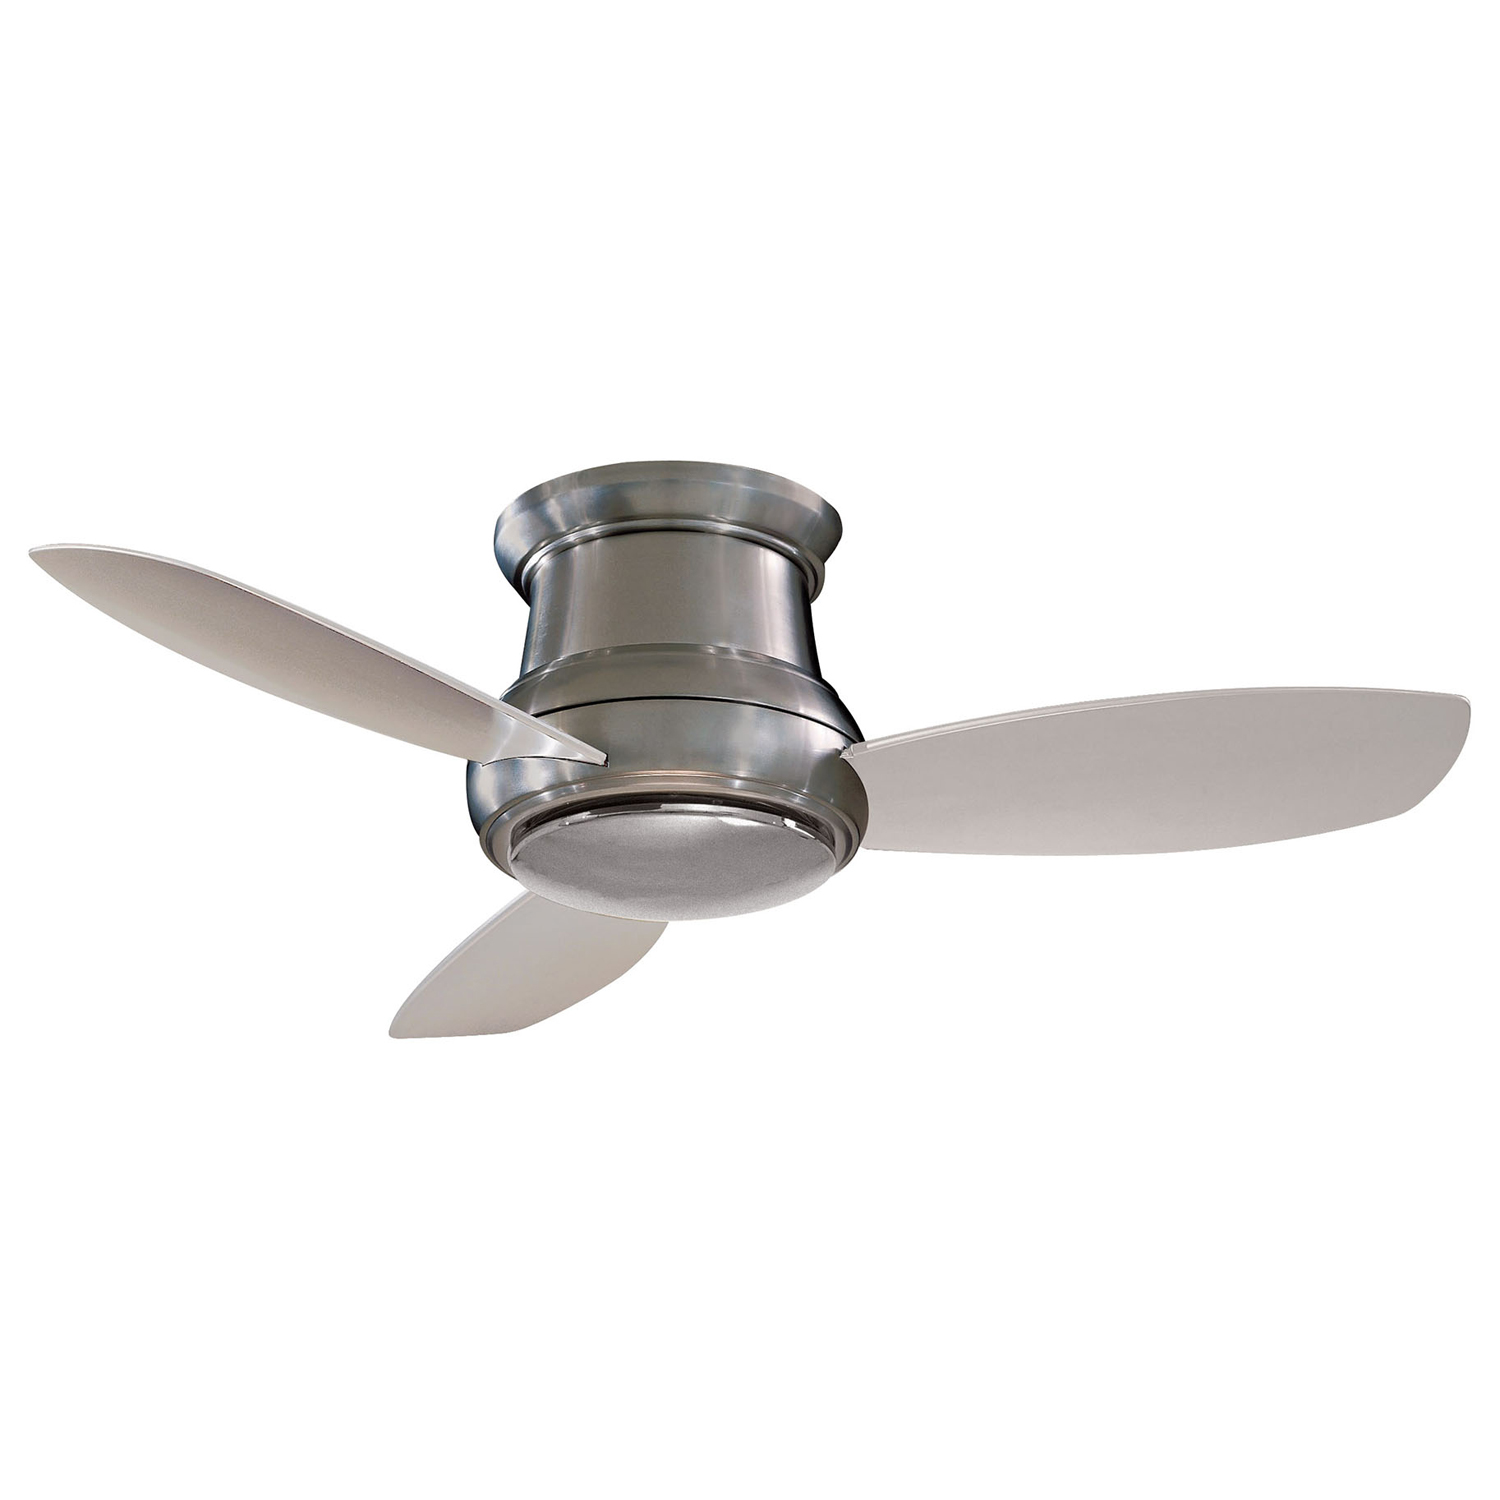 Recessed ceiling fans The Best Outdoor Ceiling Fans